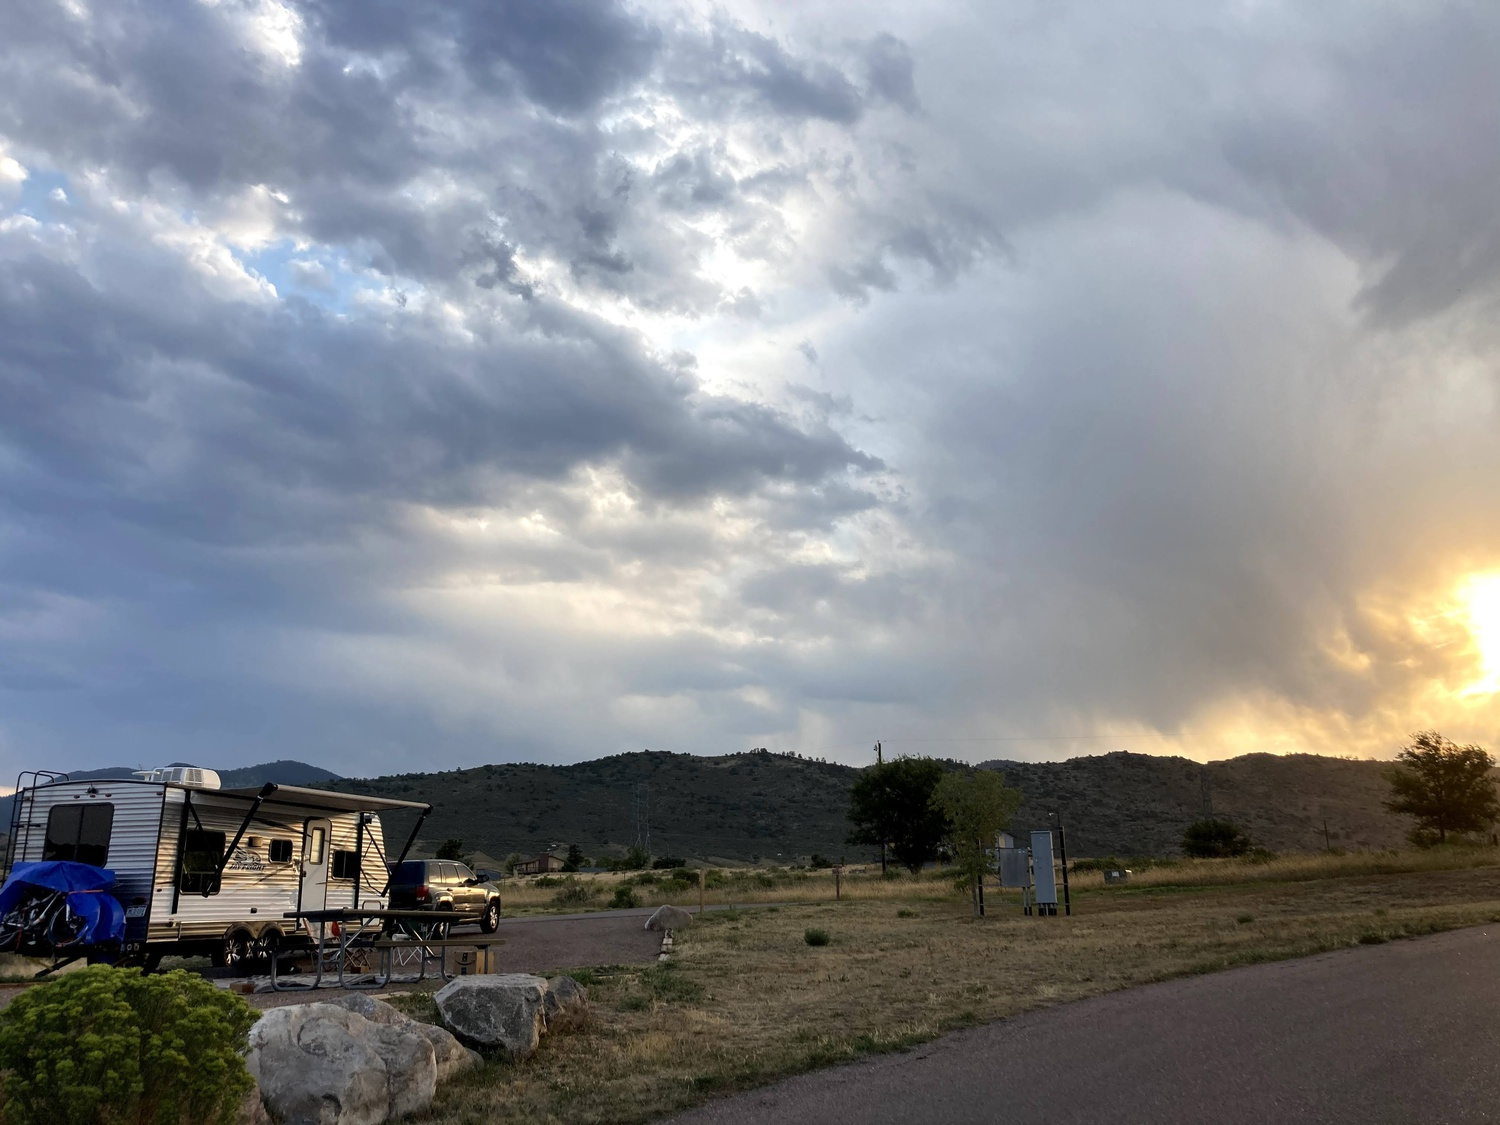 Rebecca and Michael spent their final night in Colorado at Bear Creek Lake Park before departing on a 10-day road trip to Massachusetts (August 2020).